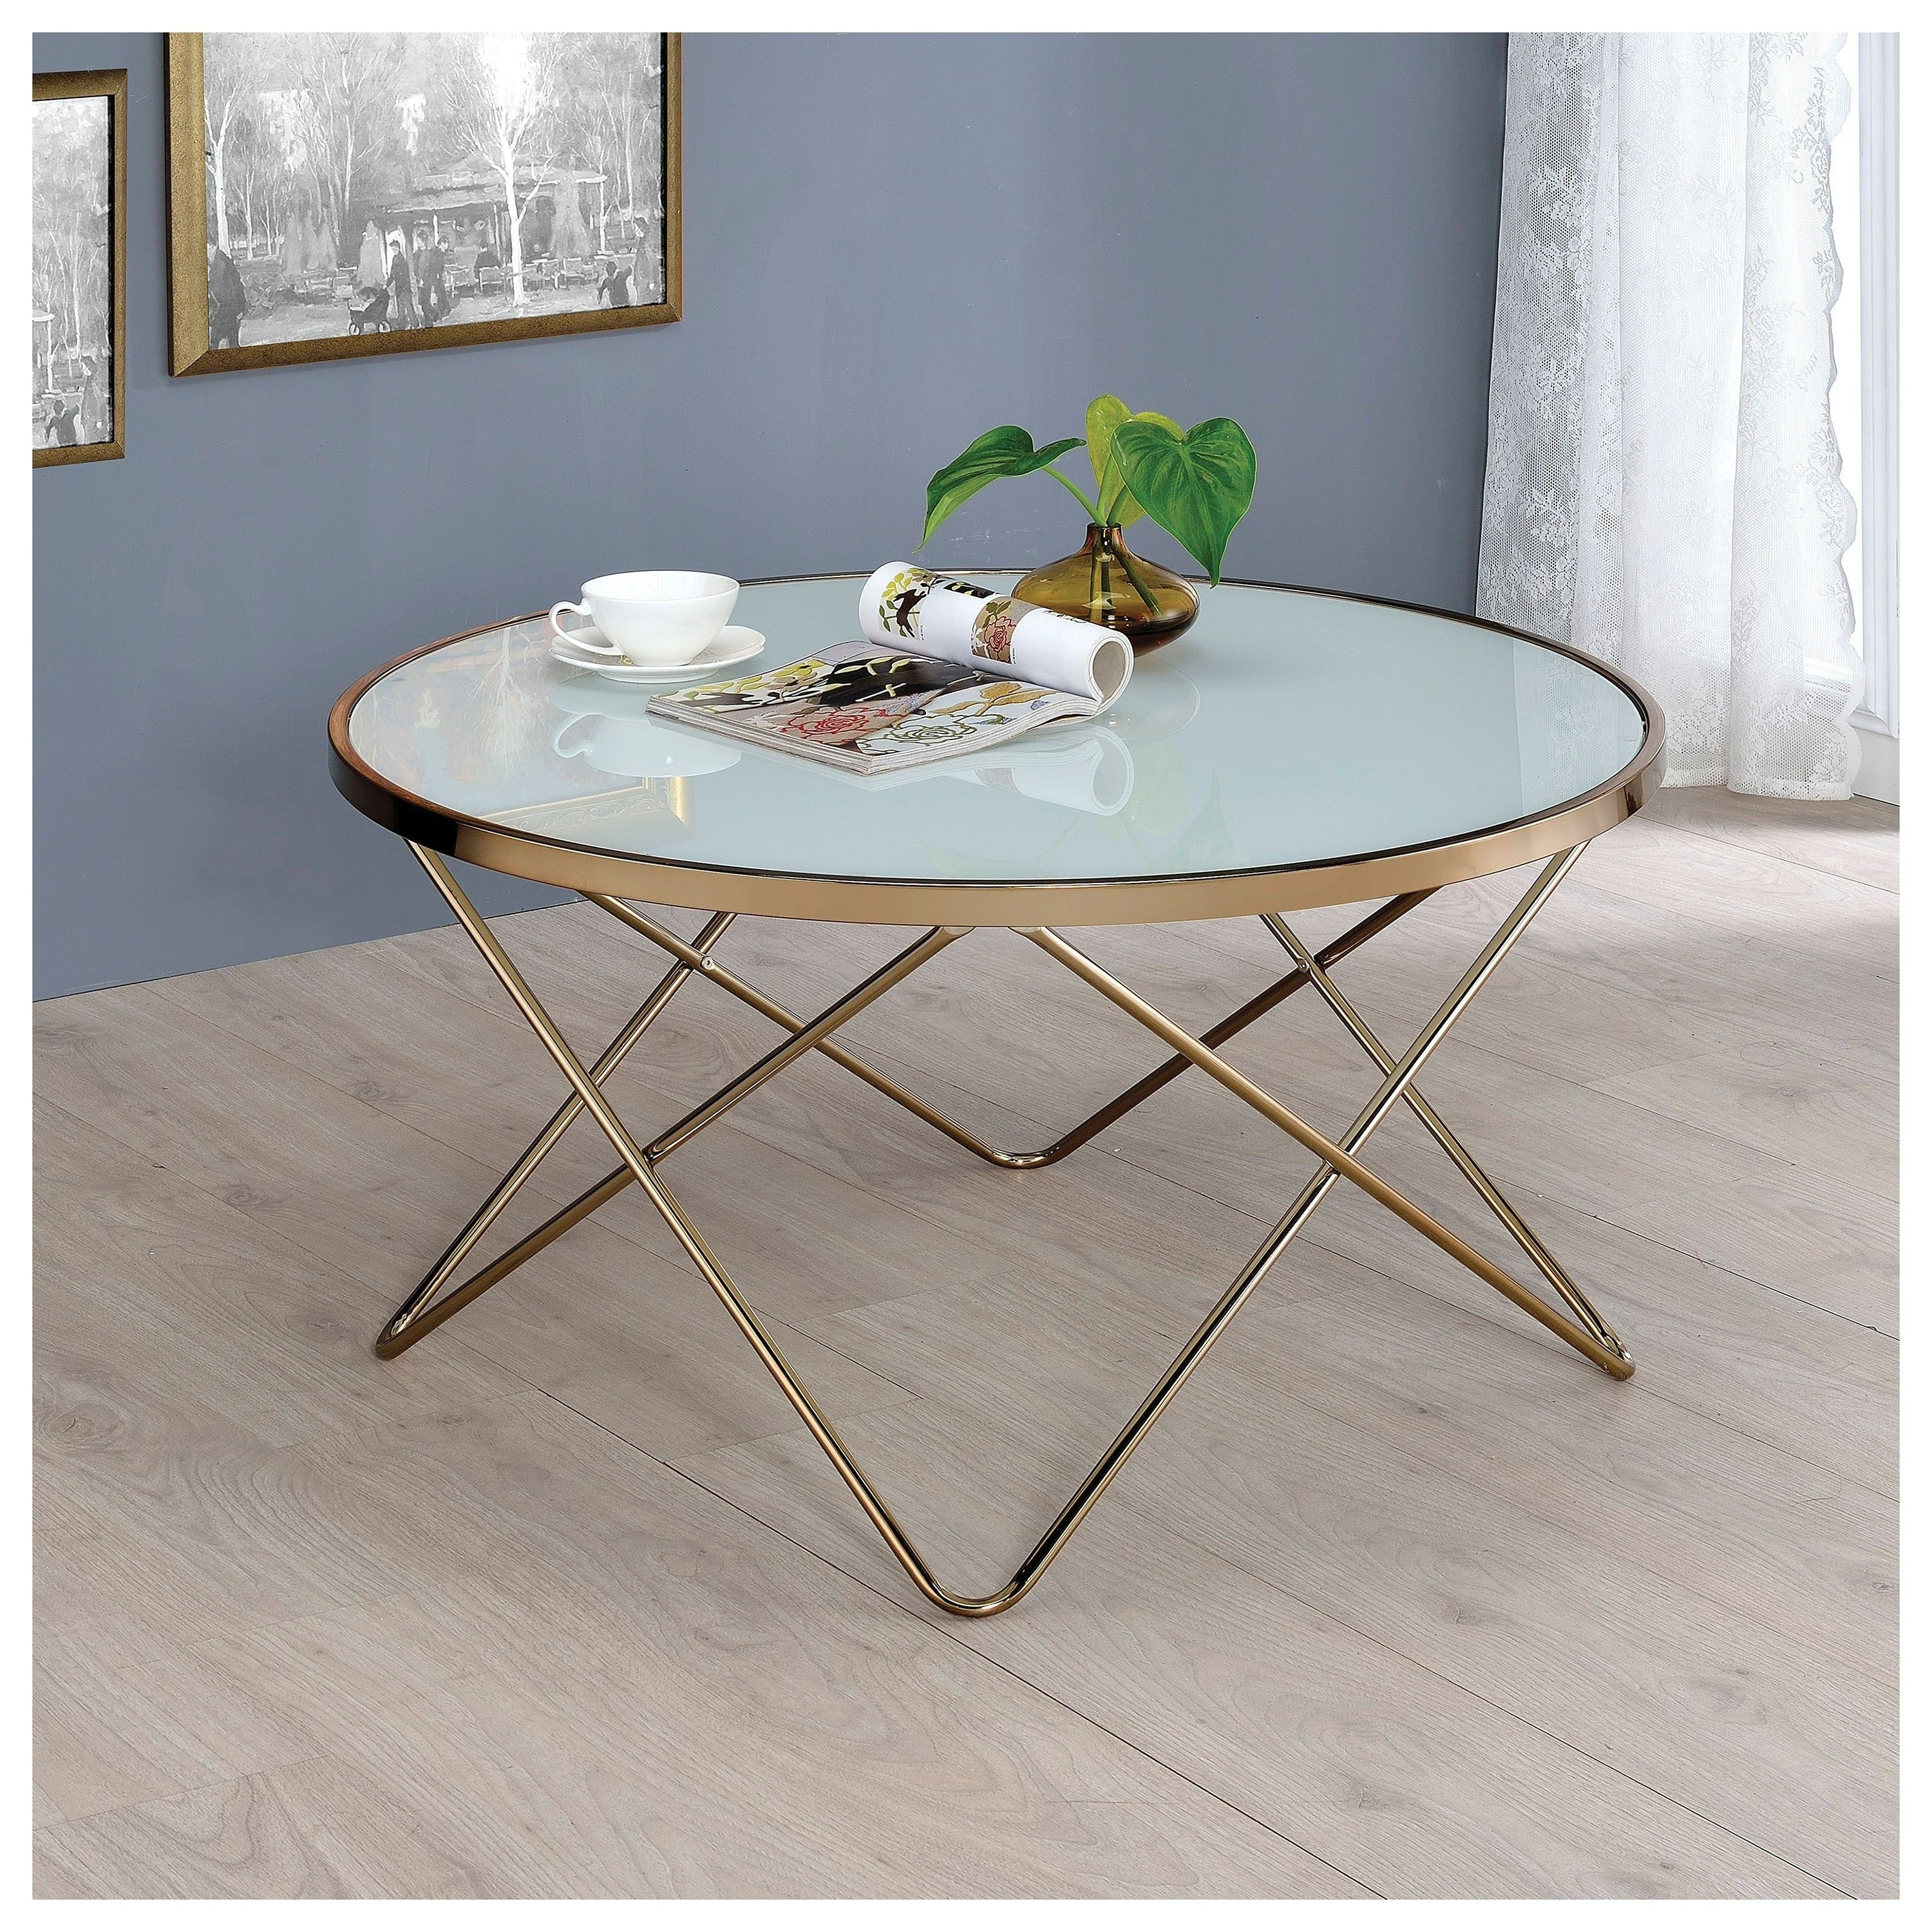 Our Best Living Room Furniture Deals In 2021 Coffee Table Coffee Table White Metal Coffee Table [ 3000 x 3000 Pixel ]